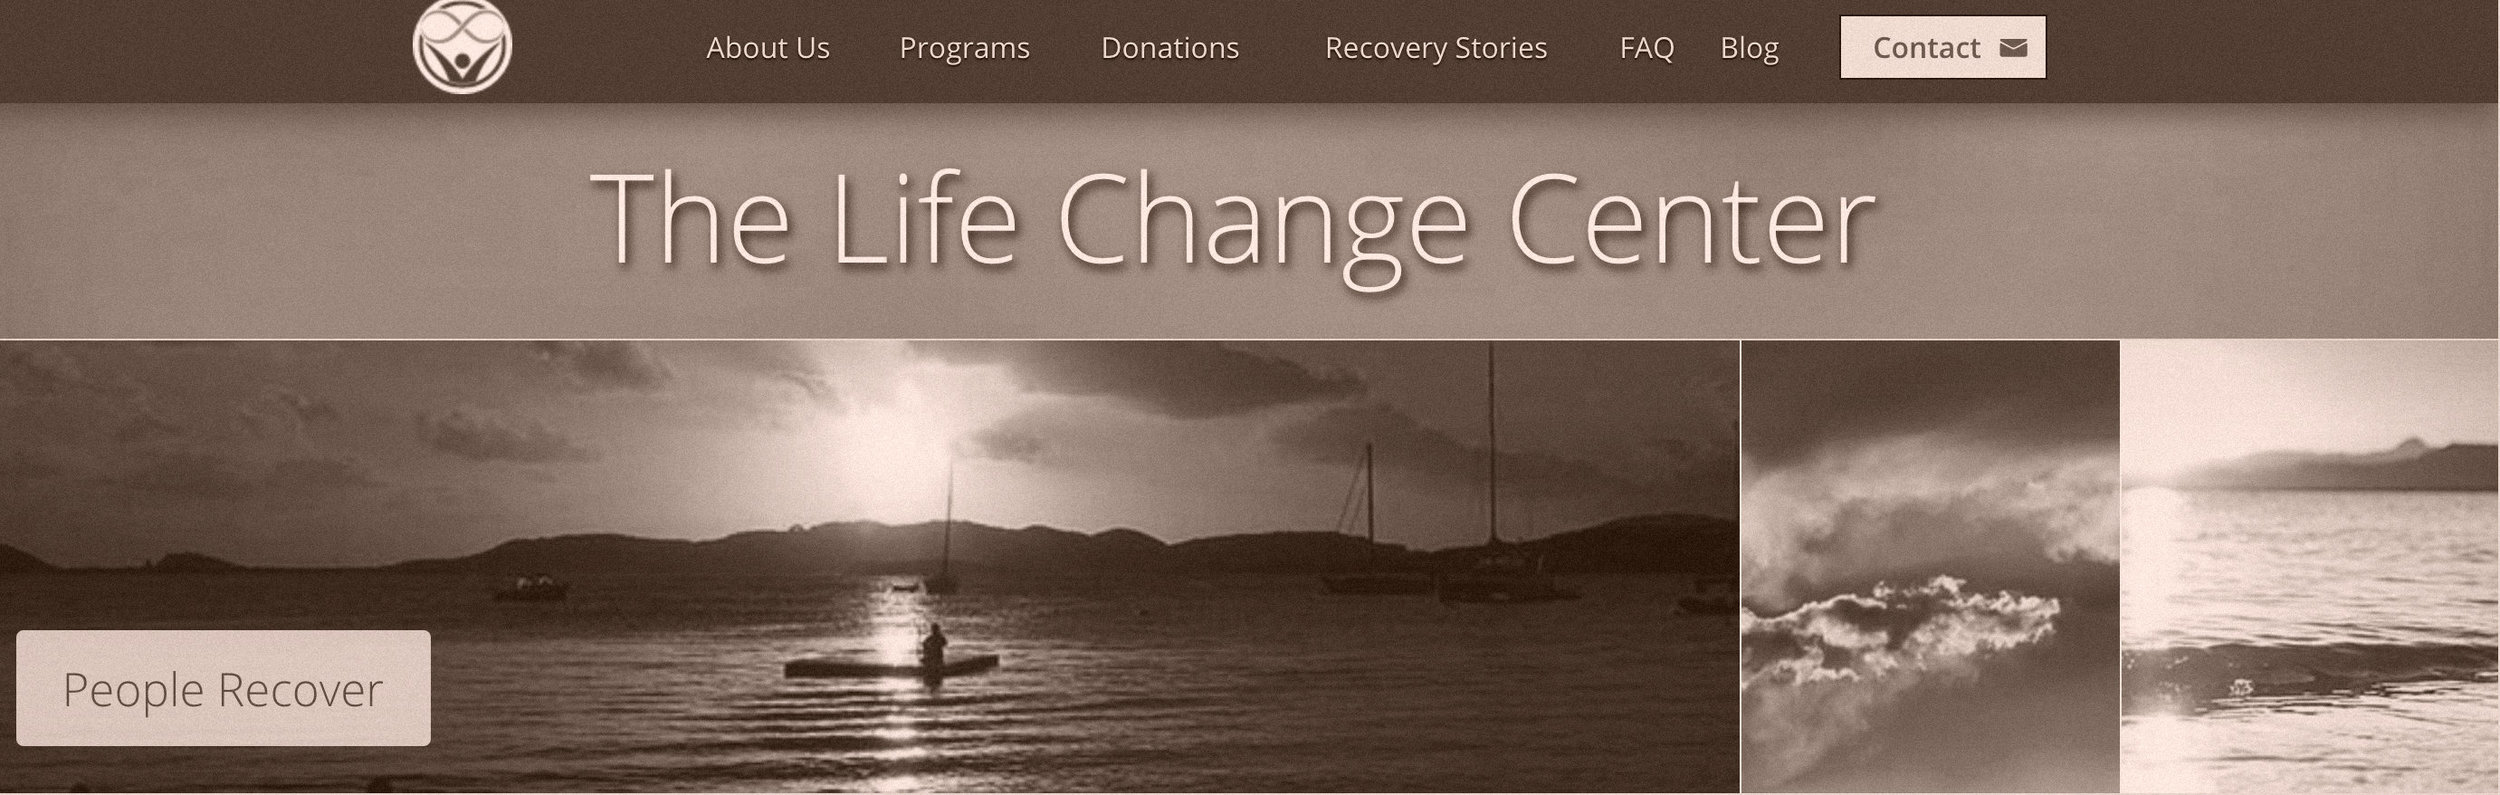 lifechangecenter.jpg